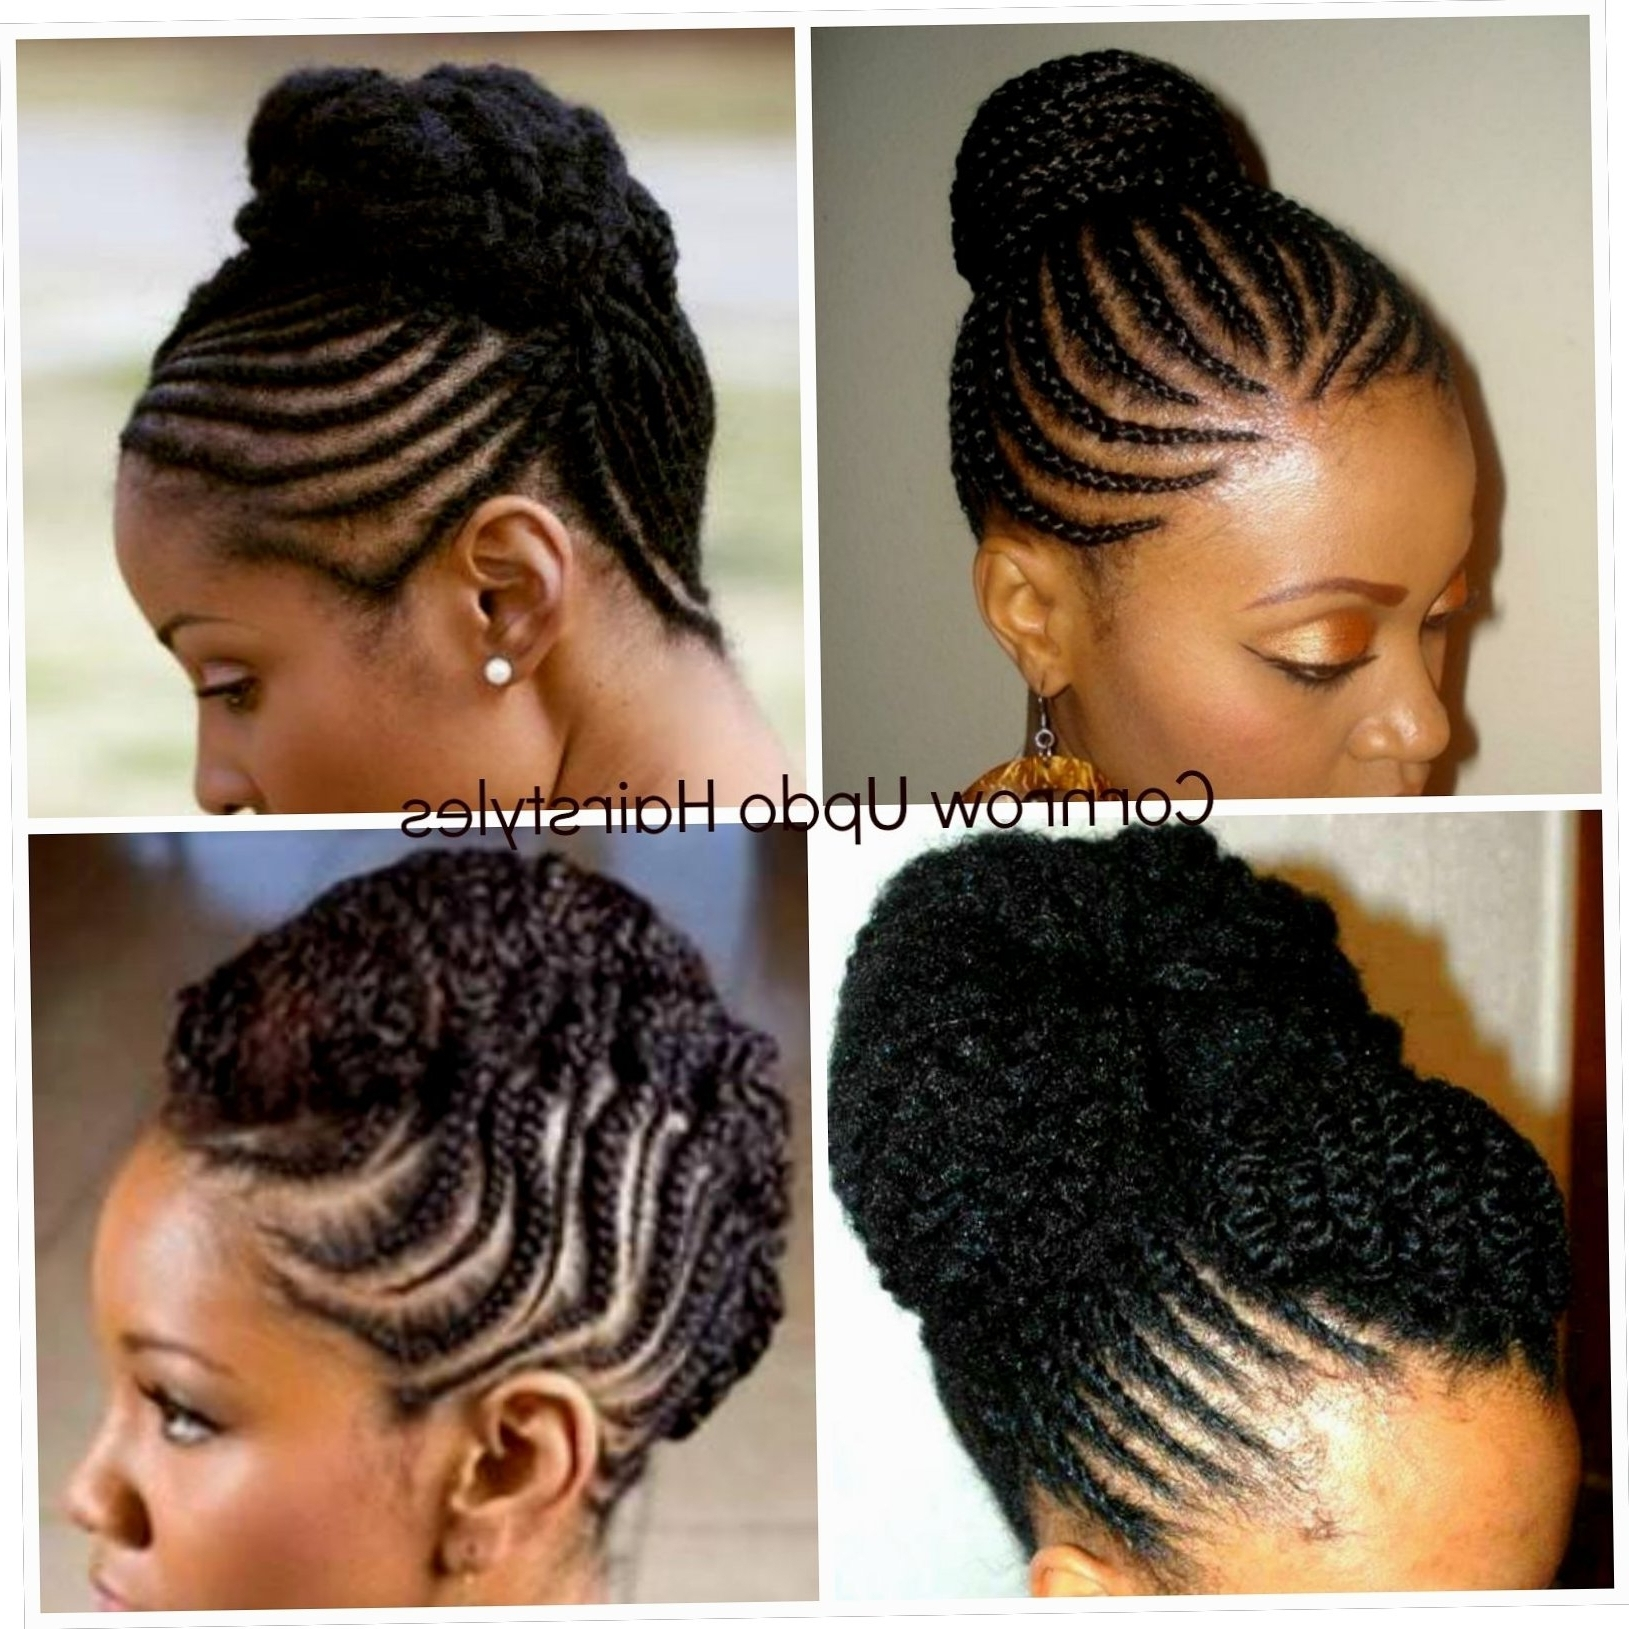 23+ Style Cornrows Hairstyles For African Hair 2018 Regarding Preferred Cornrows Hairstyles For African Hair (View 2 of 15)